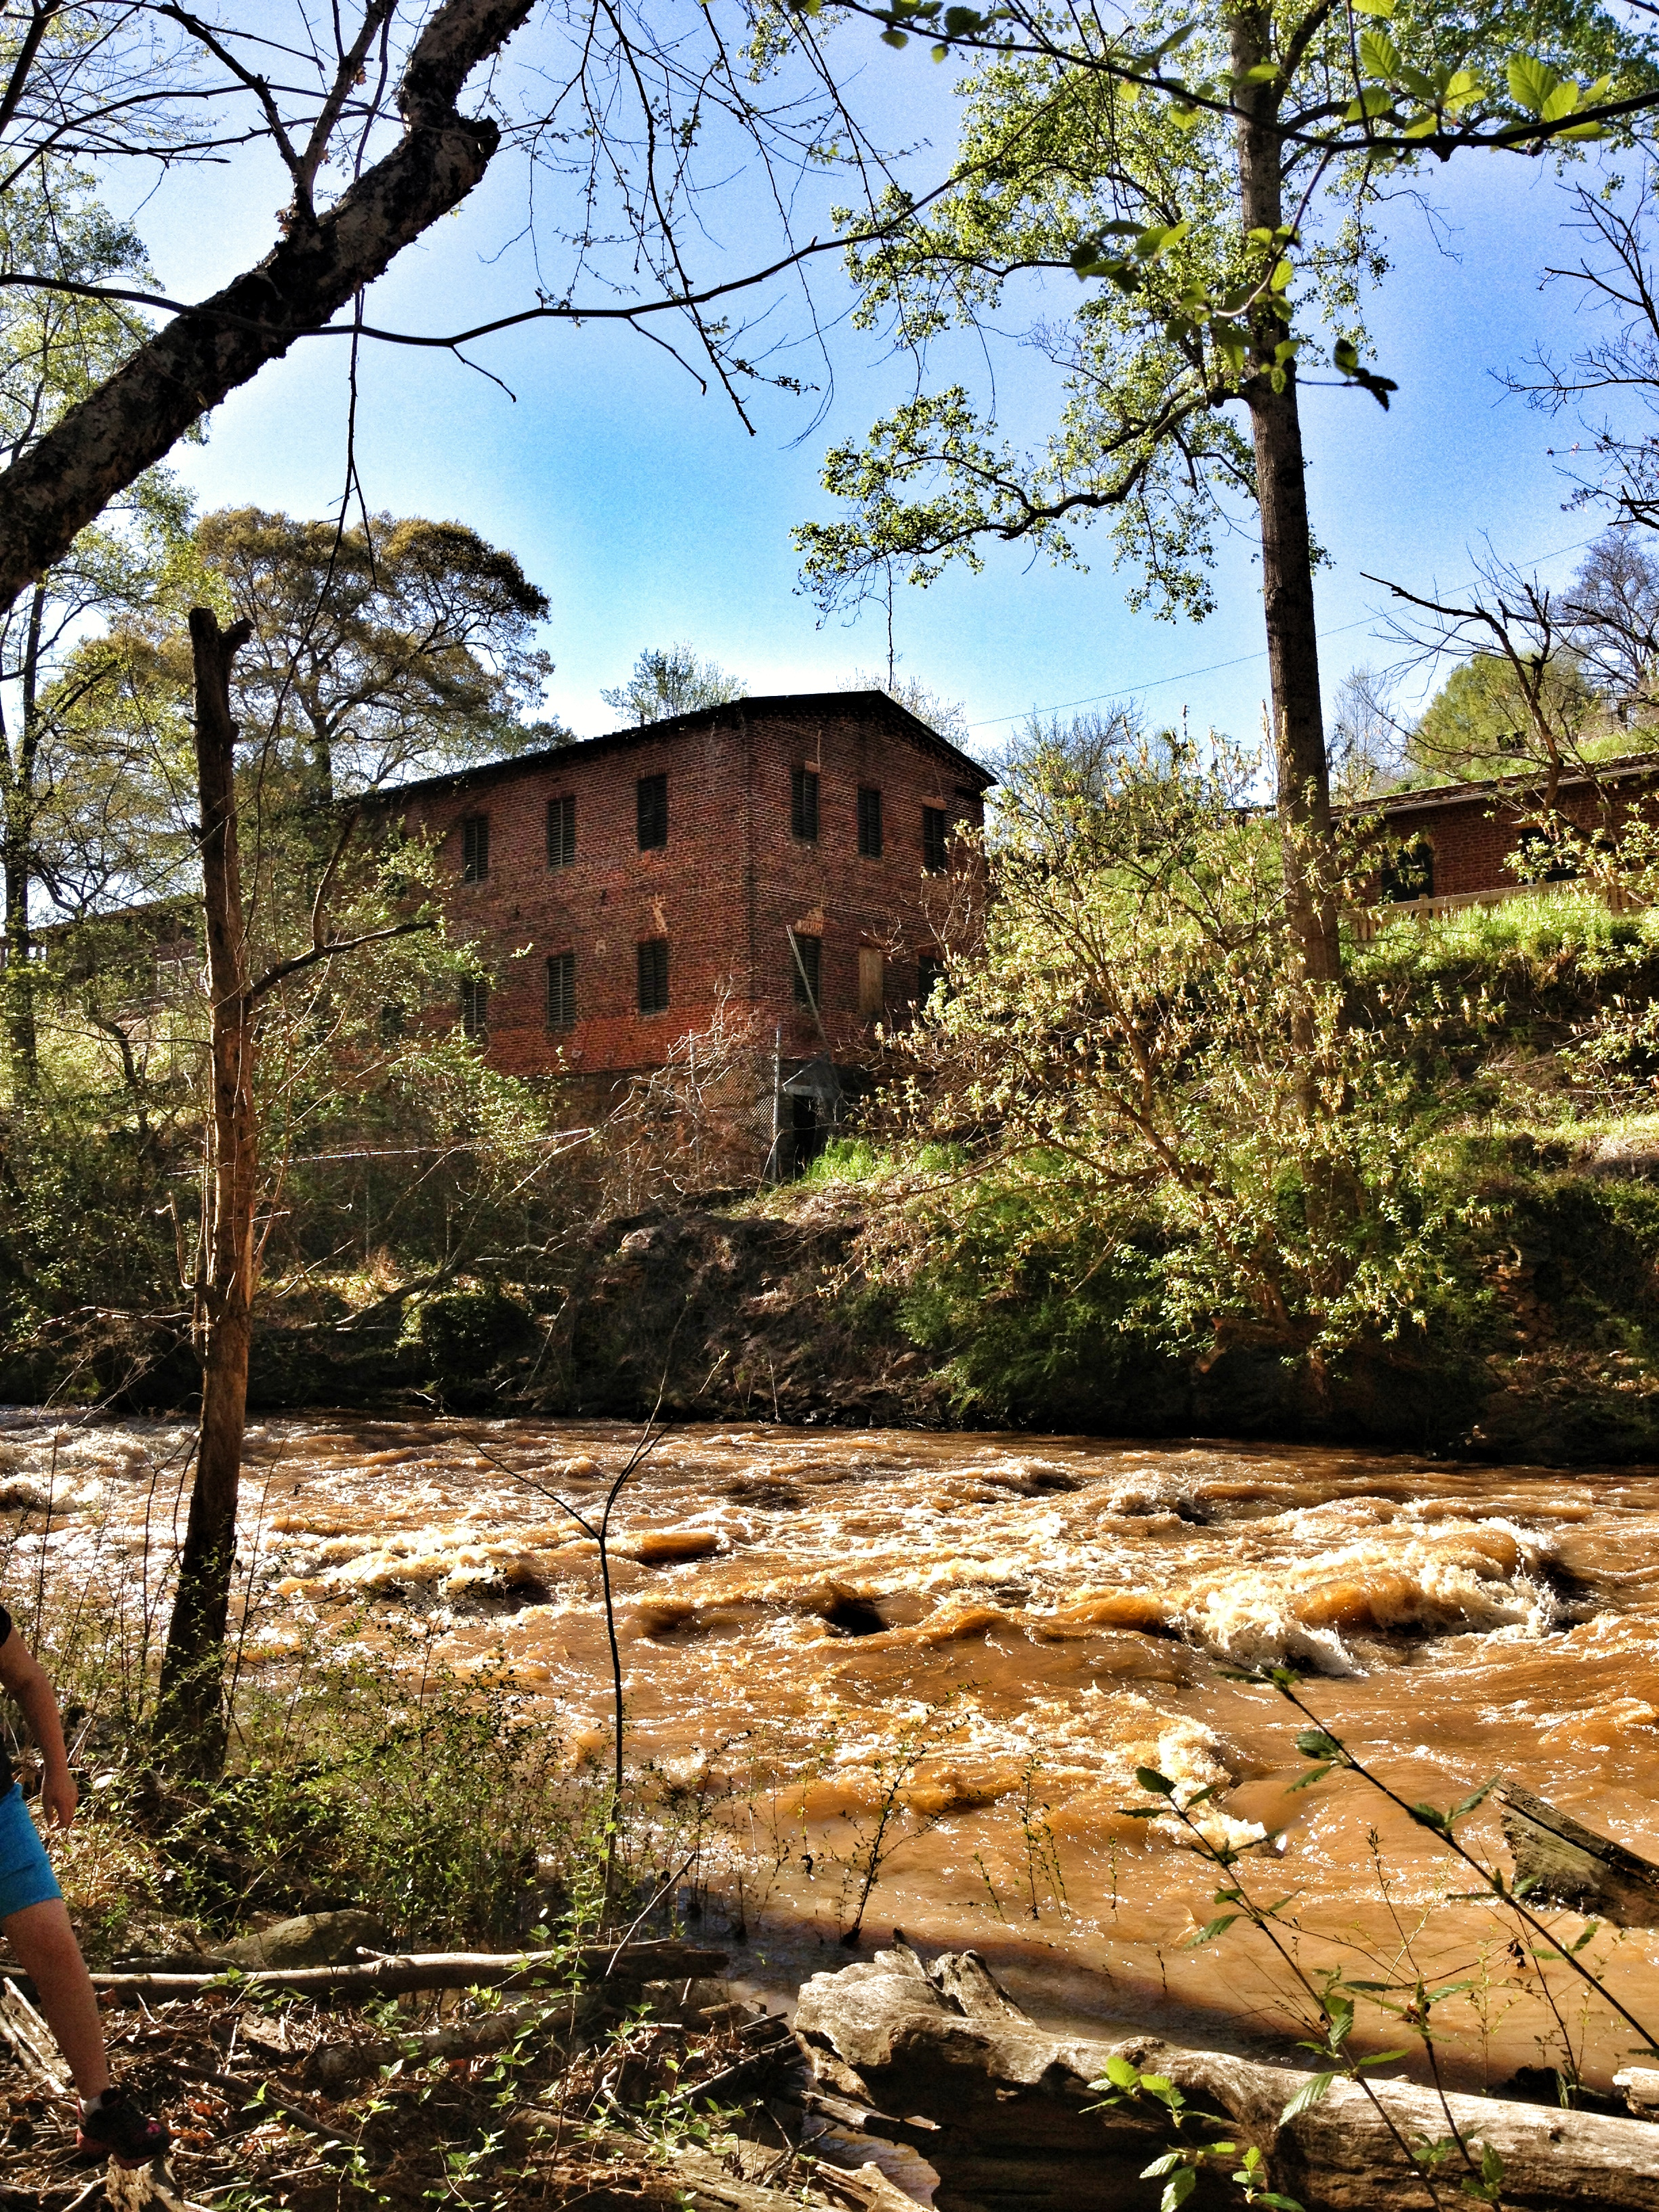 Take A Scenic Stroll Through Old Mill Park In Roswell